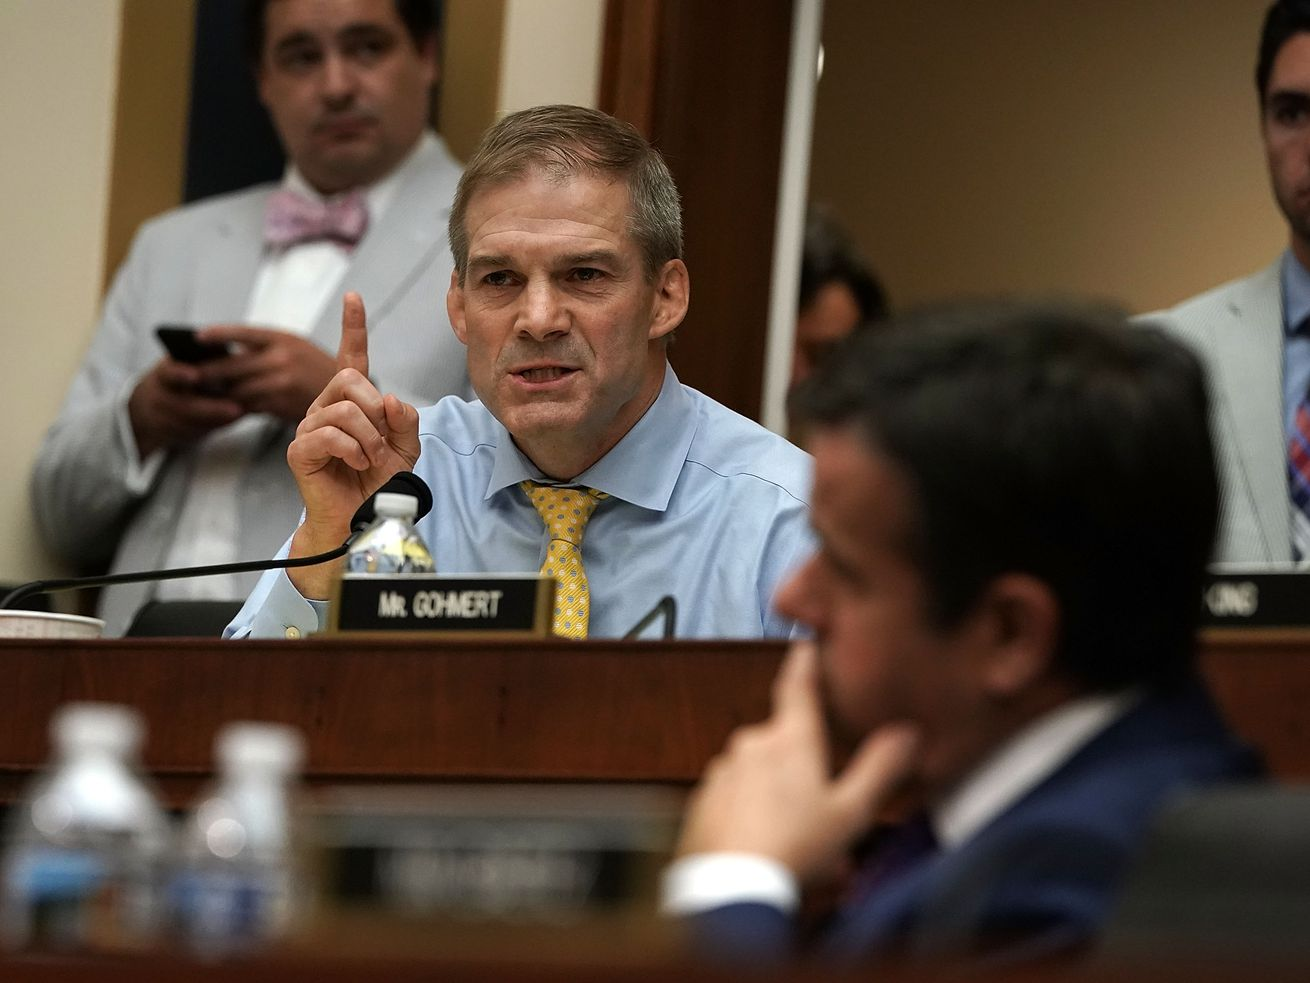 Rep. Jim Jordan (R-OH) speaks during a hearing before the House Judiciary Committee, the committee he wants to be ranking member of.